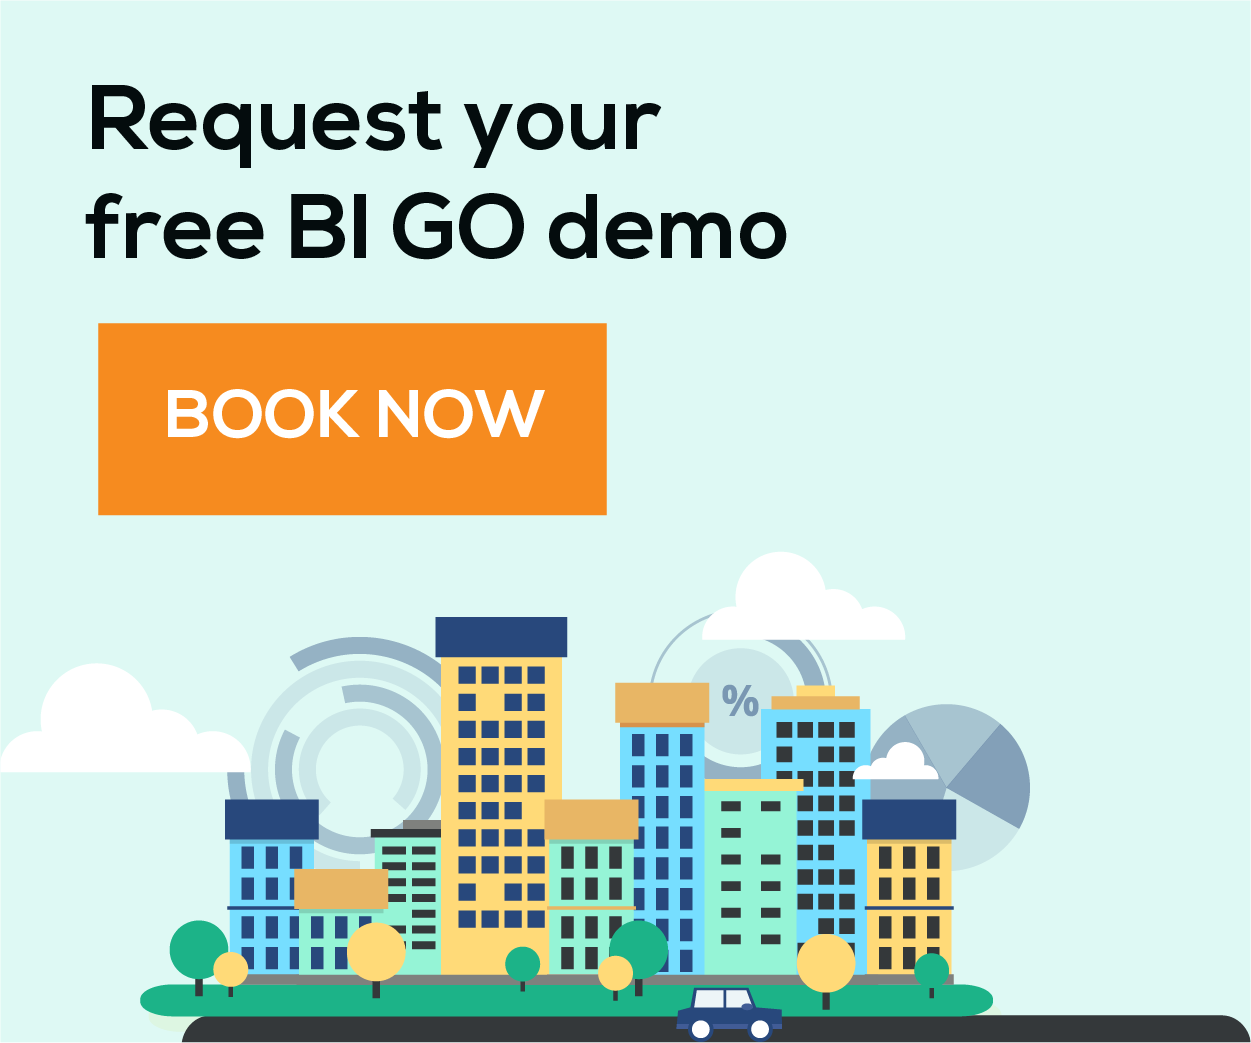 Request your free BI GO demo